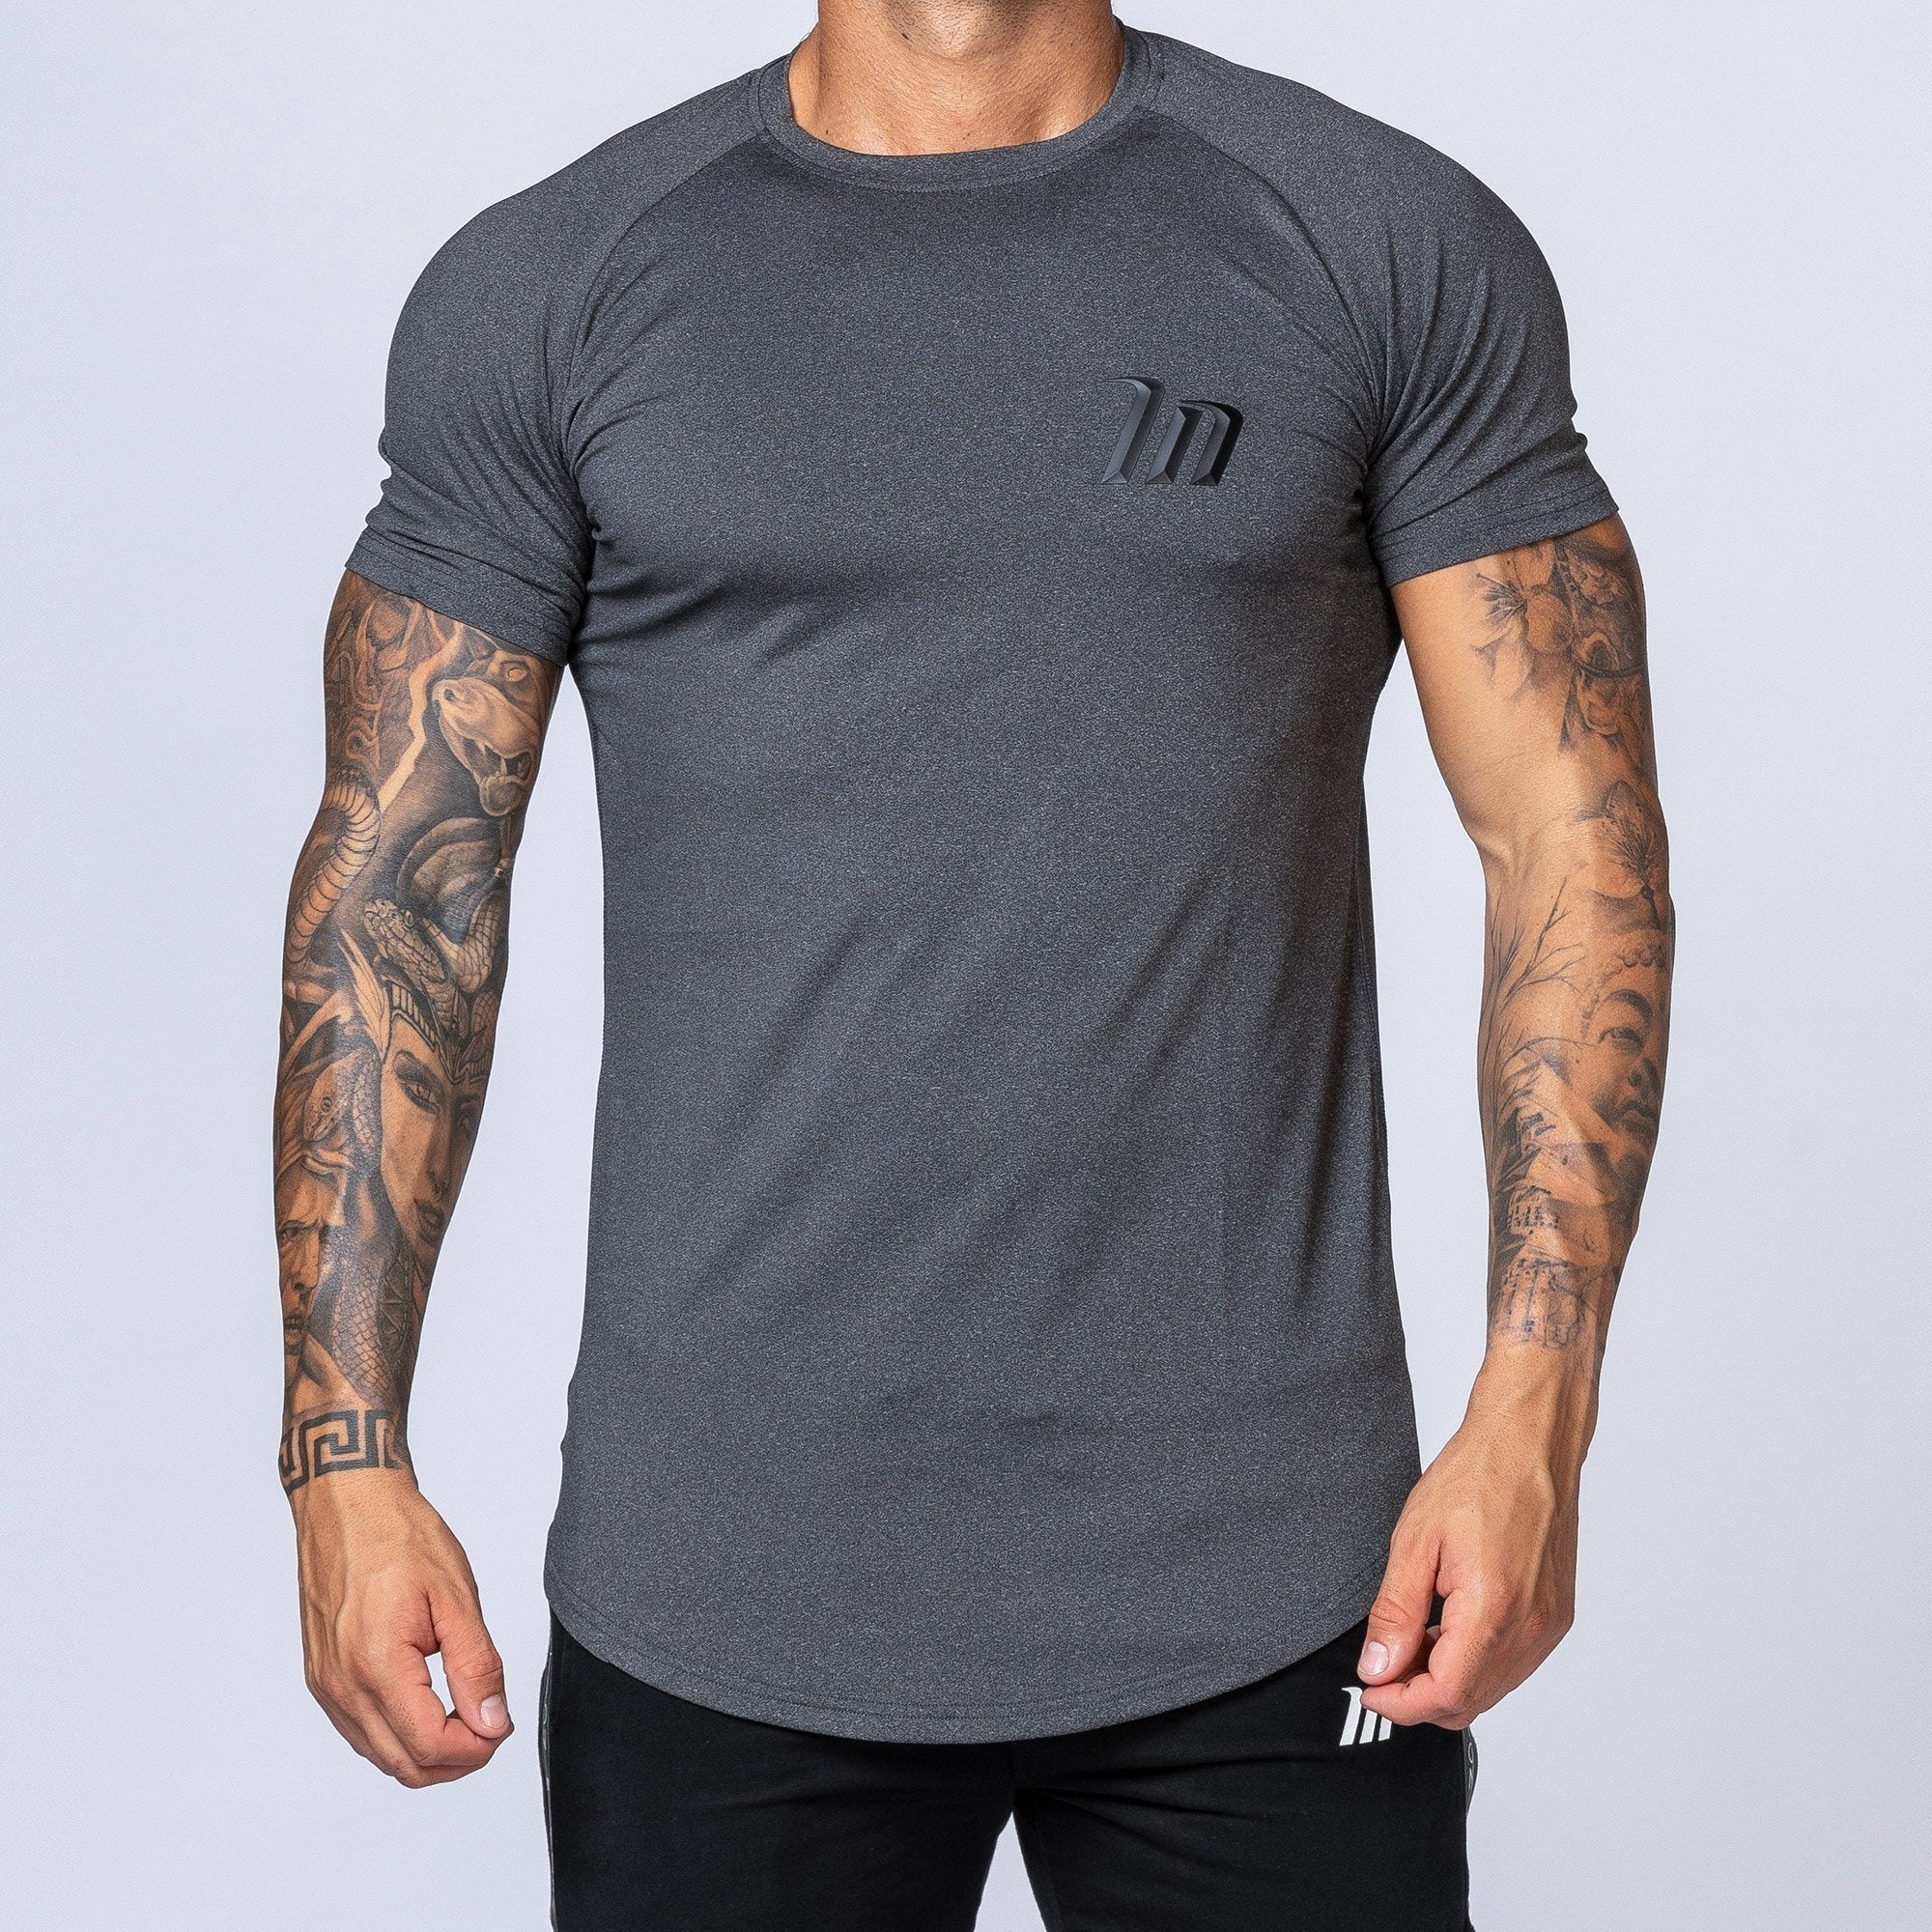 Muscle Nation ClimaFlex T-Shirt - Heather Charcoal Grey